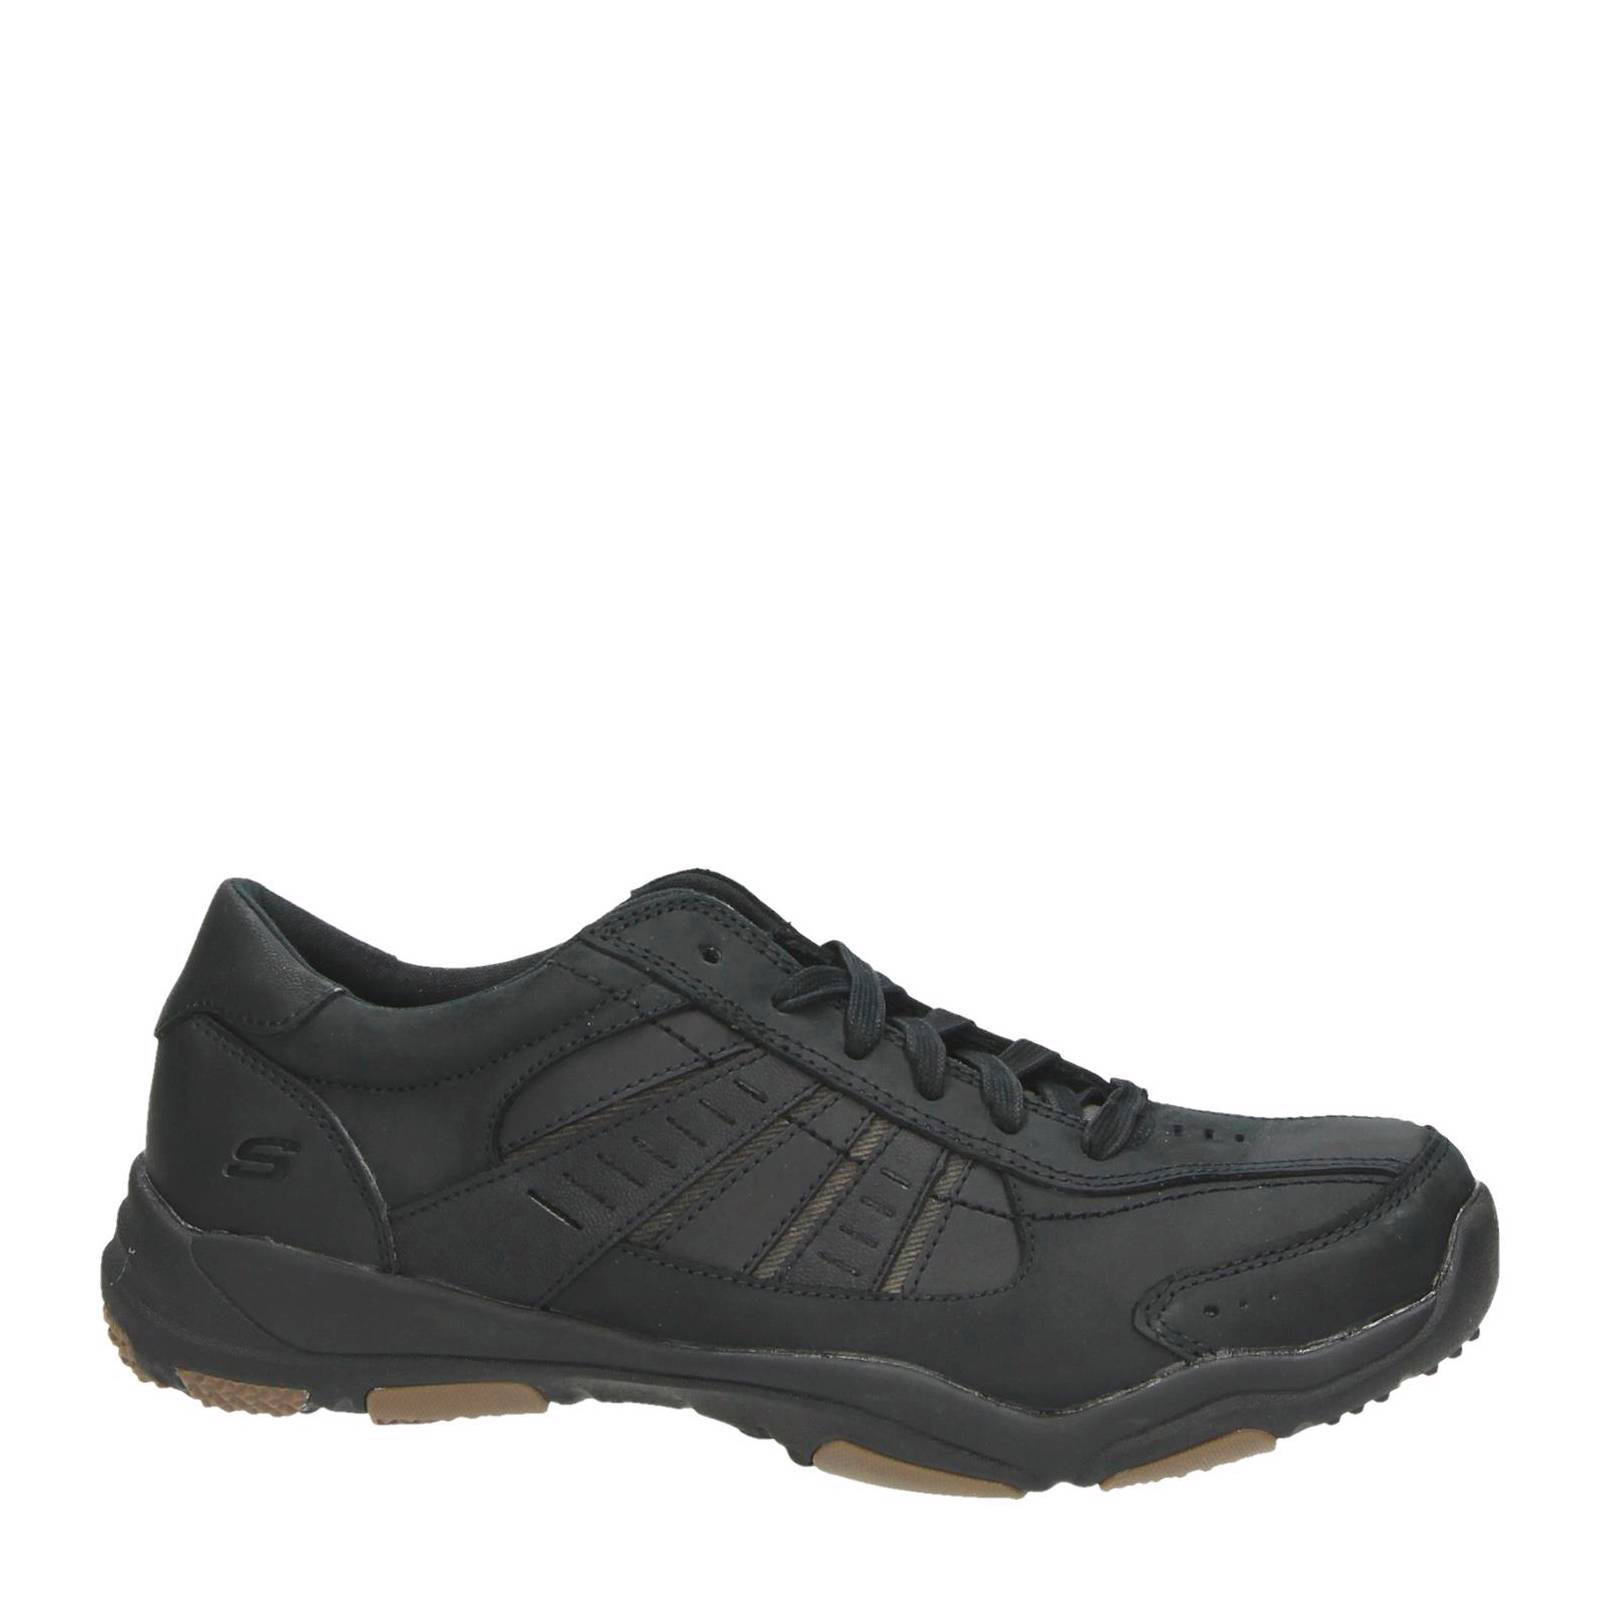 skechers streetwear air cooled memory foam relaxed fit